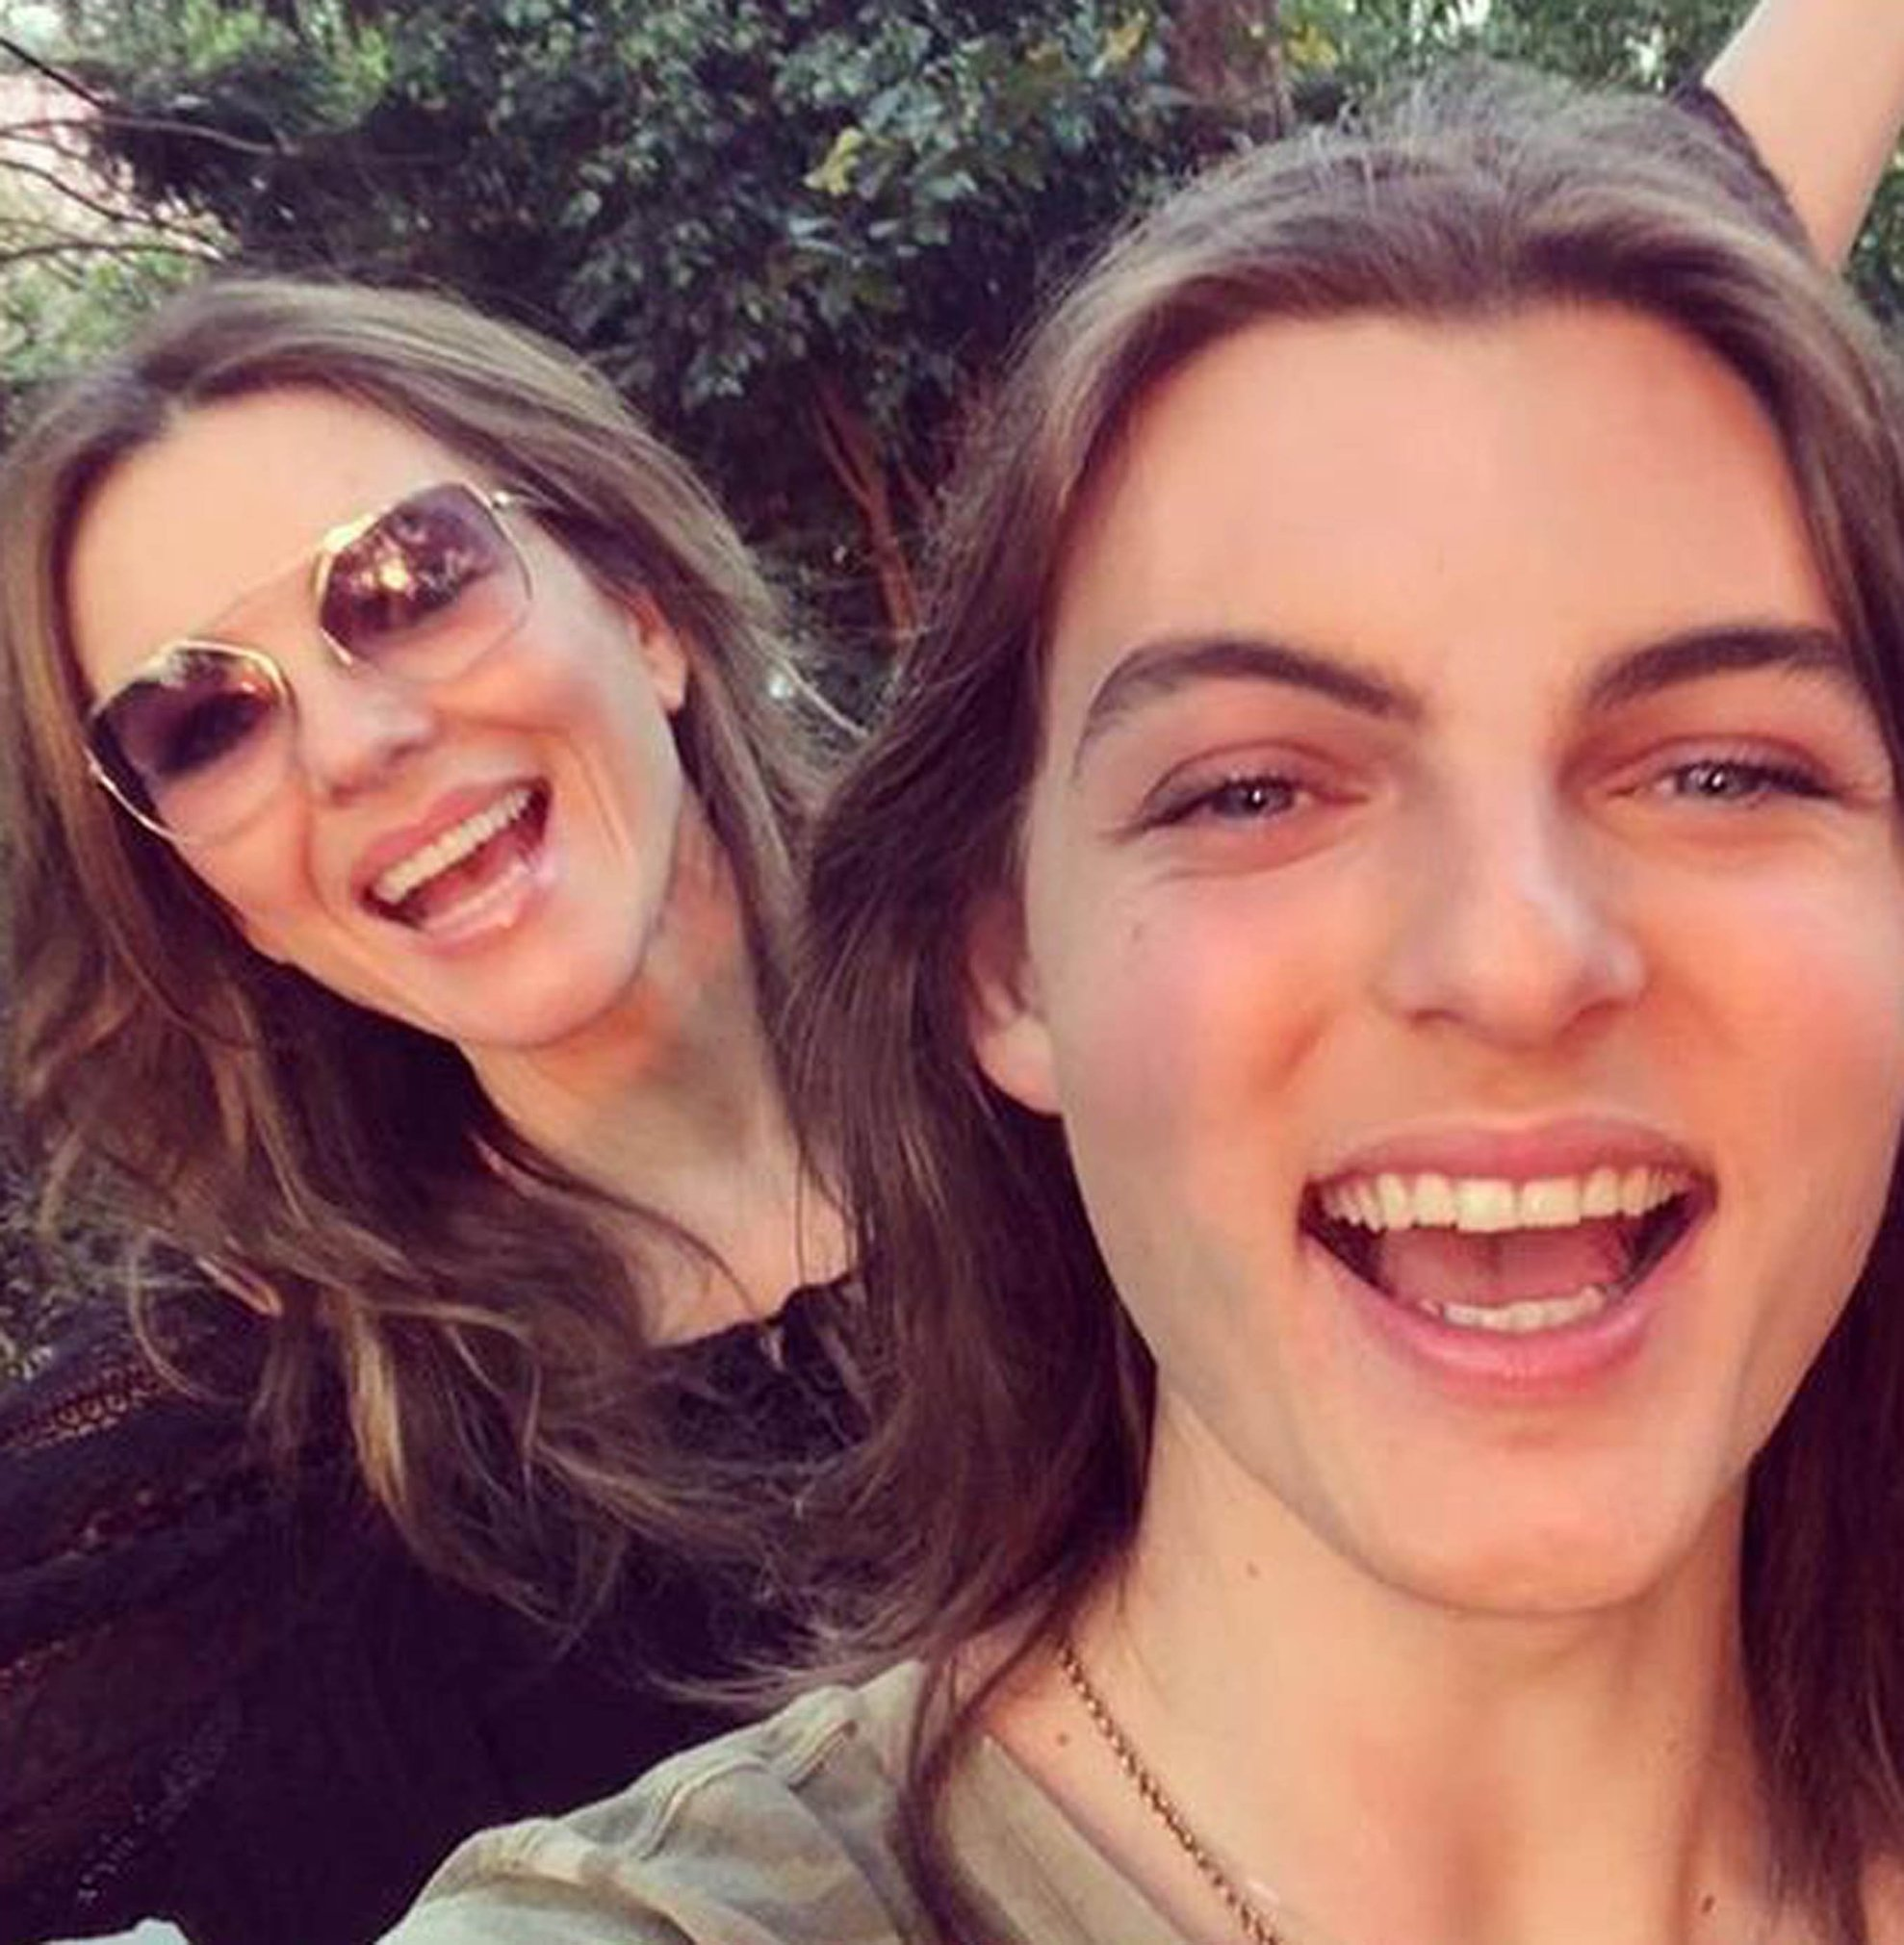 5-4-2019  Celebrity Selfies  Pictured: Elizabeth and Damian Hurley, Image: 424532342, License: Rights-managed, Restrictions: , Model Release: no, Credit line: Profimedia, Planet